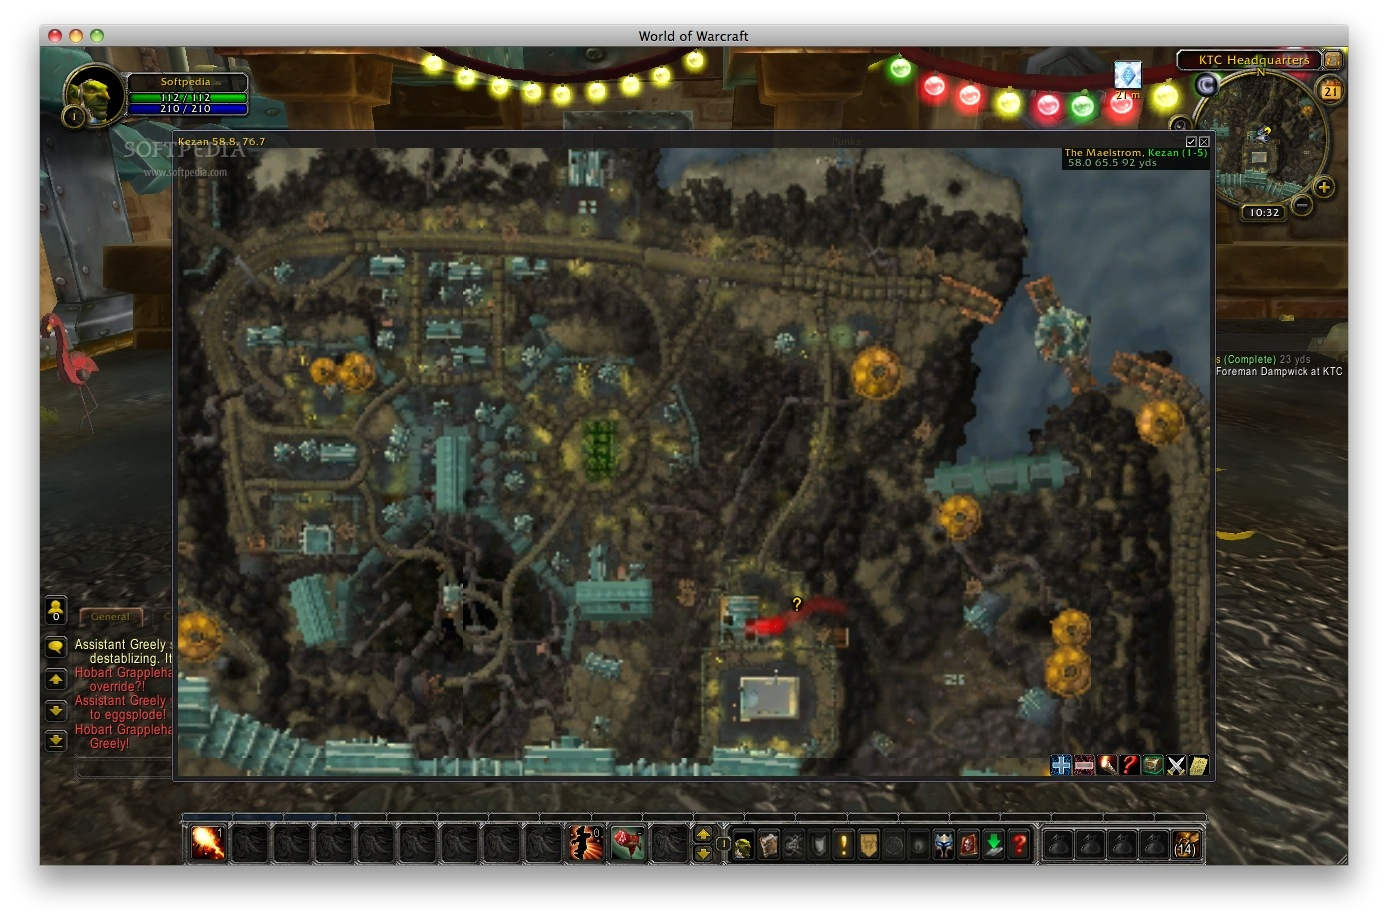 Carbonite Maps Mac 8 0 1 2 - Download